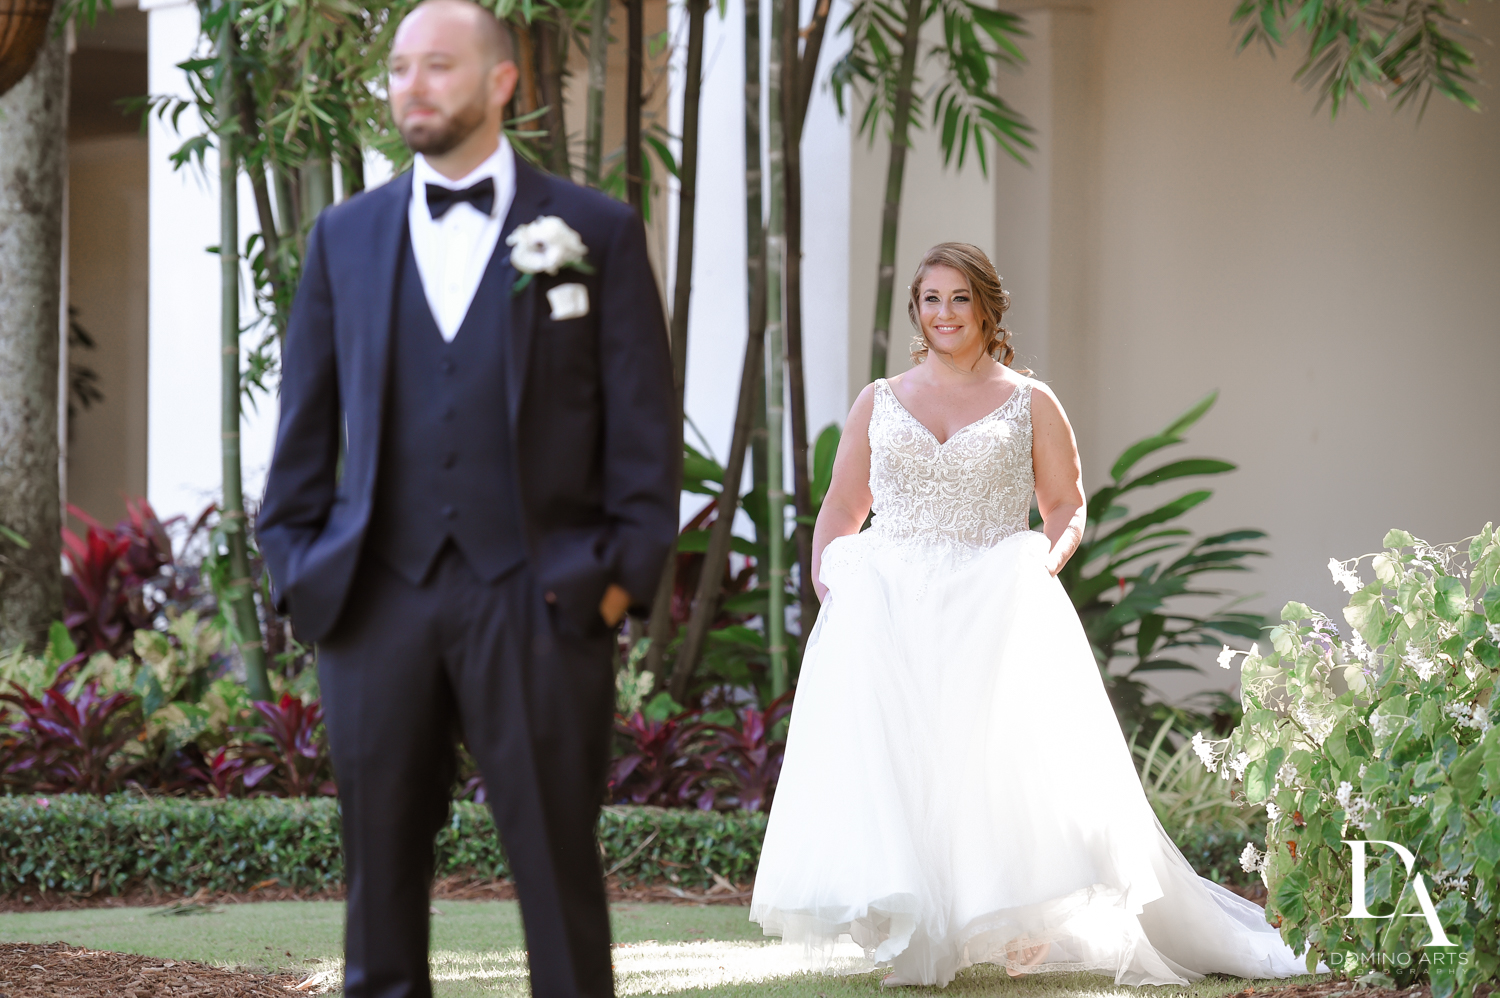 First meeting at Romantic Outdoors Wedding at Woodfield Country Club in Boca Raton, Florida